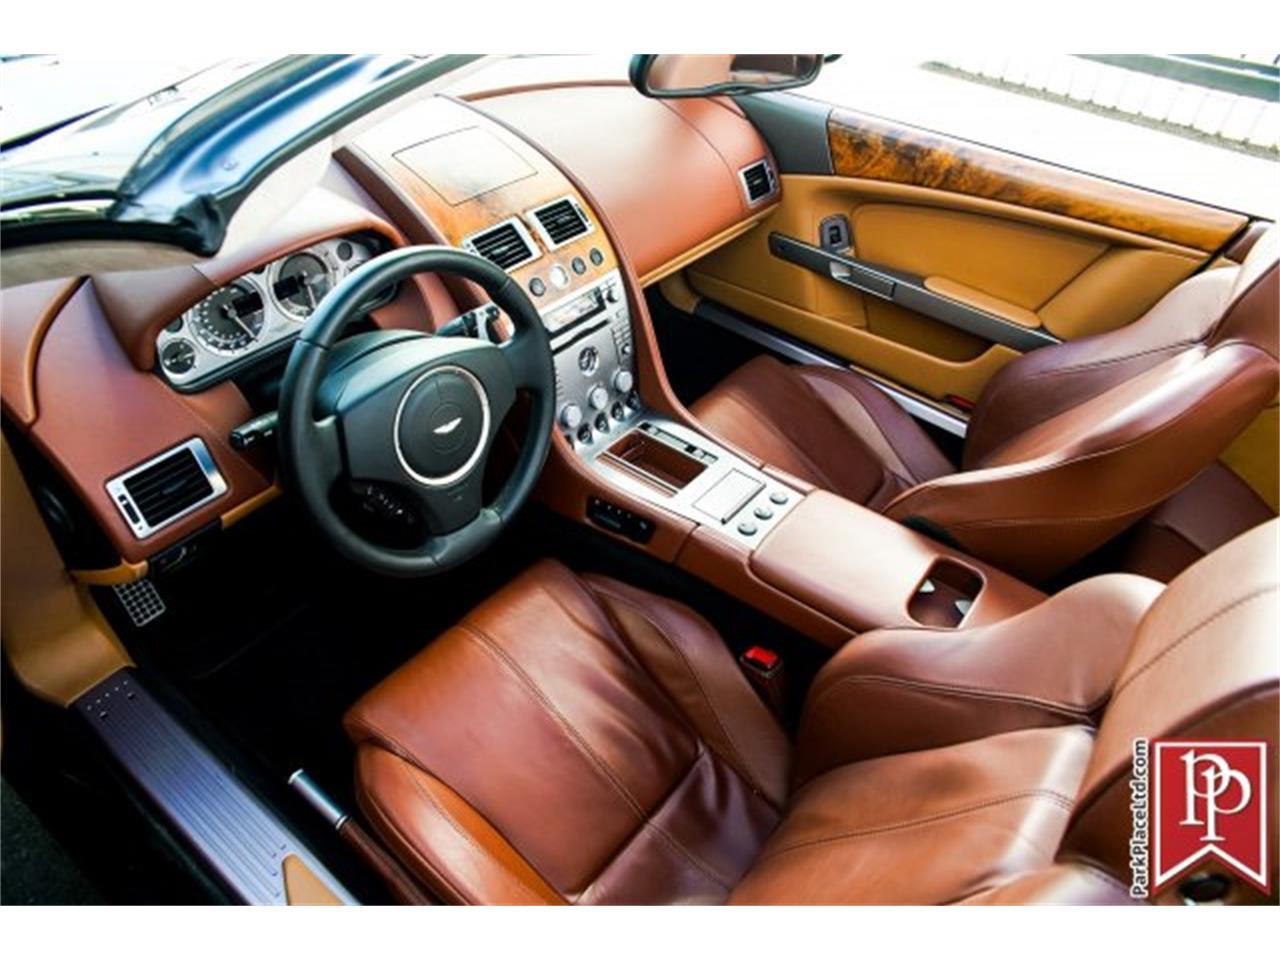 Large Picture of '07 Aston Martin DB9 located in Bellevue Washington - $59,950.00 - PTXI